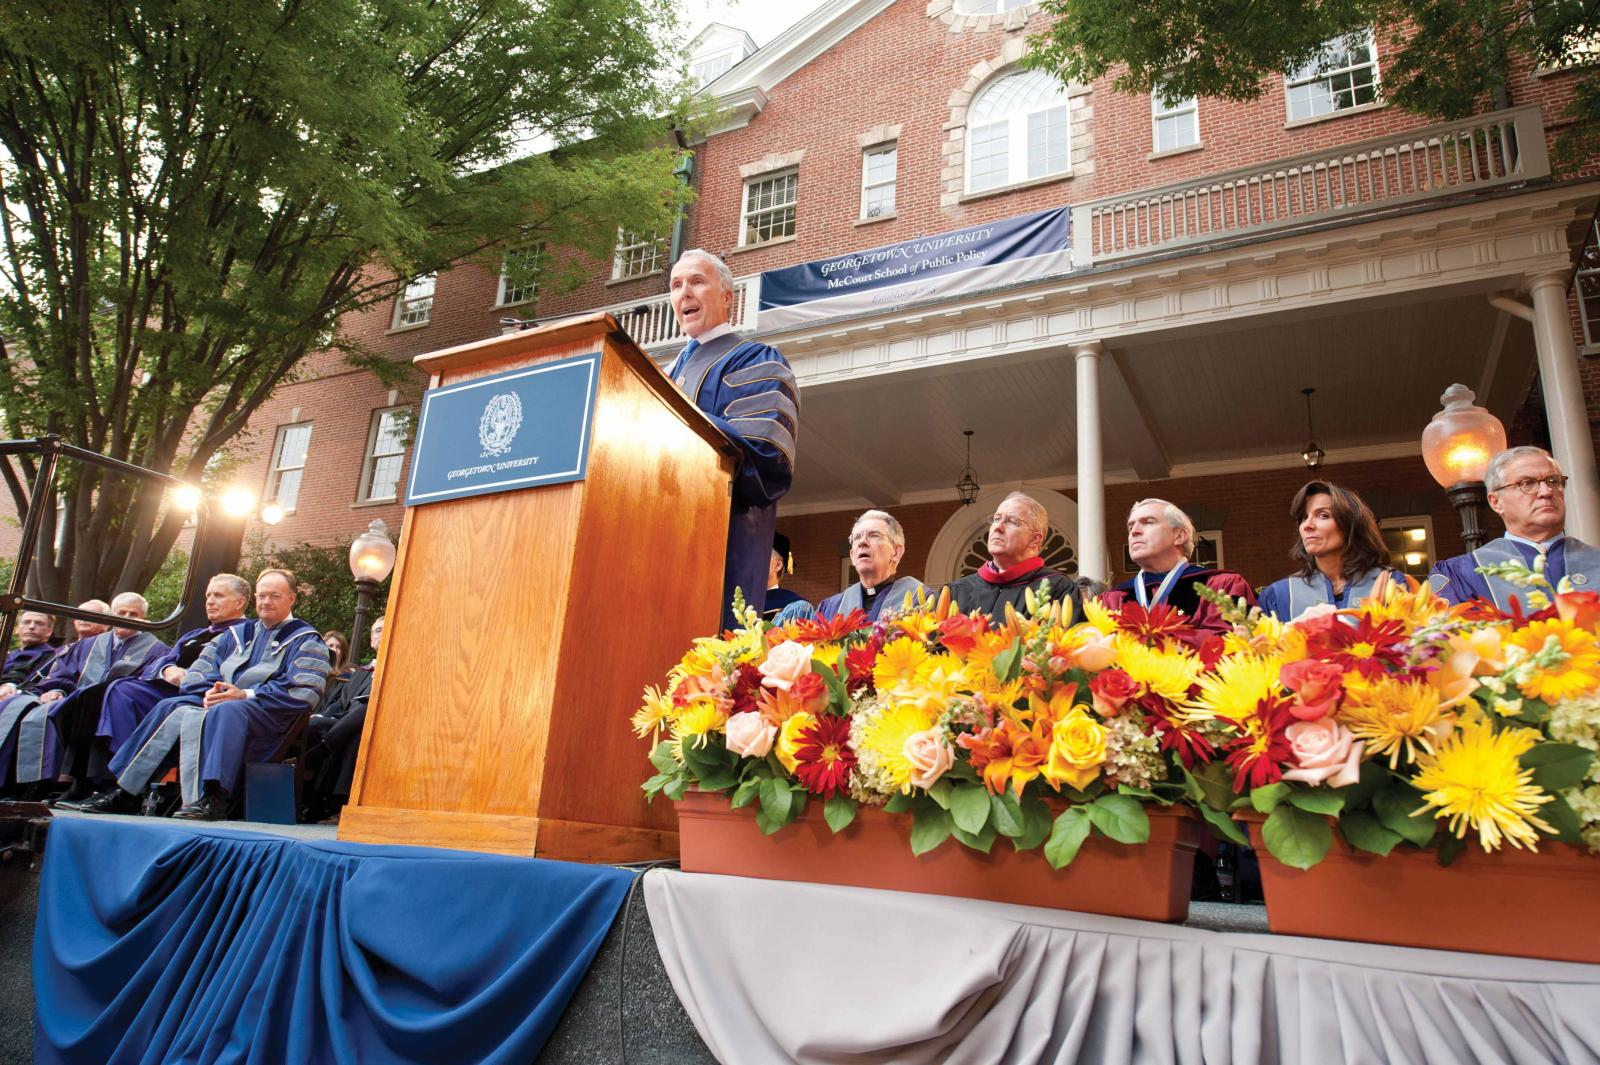 Celebrating the formal launch of the McCourt School of Public Policy